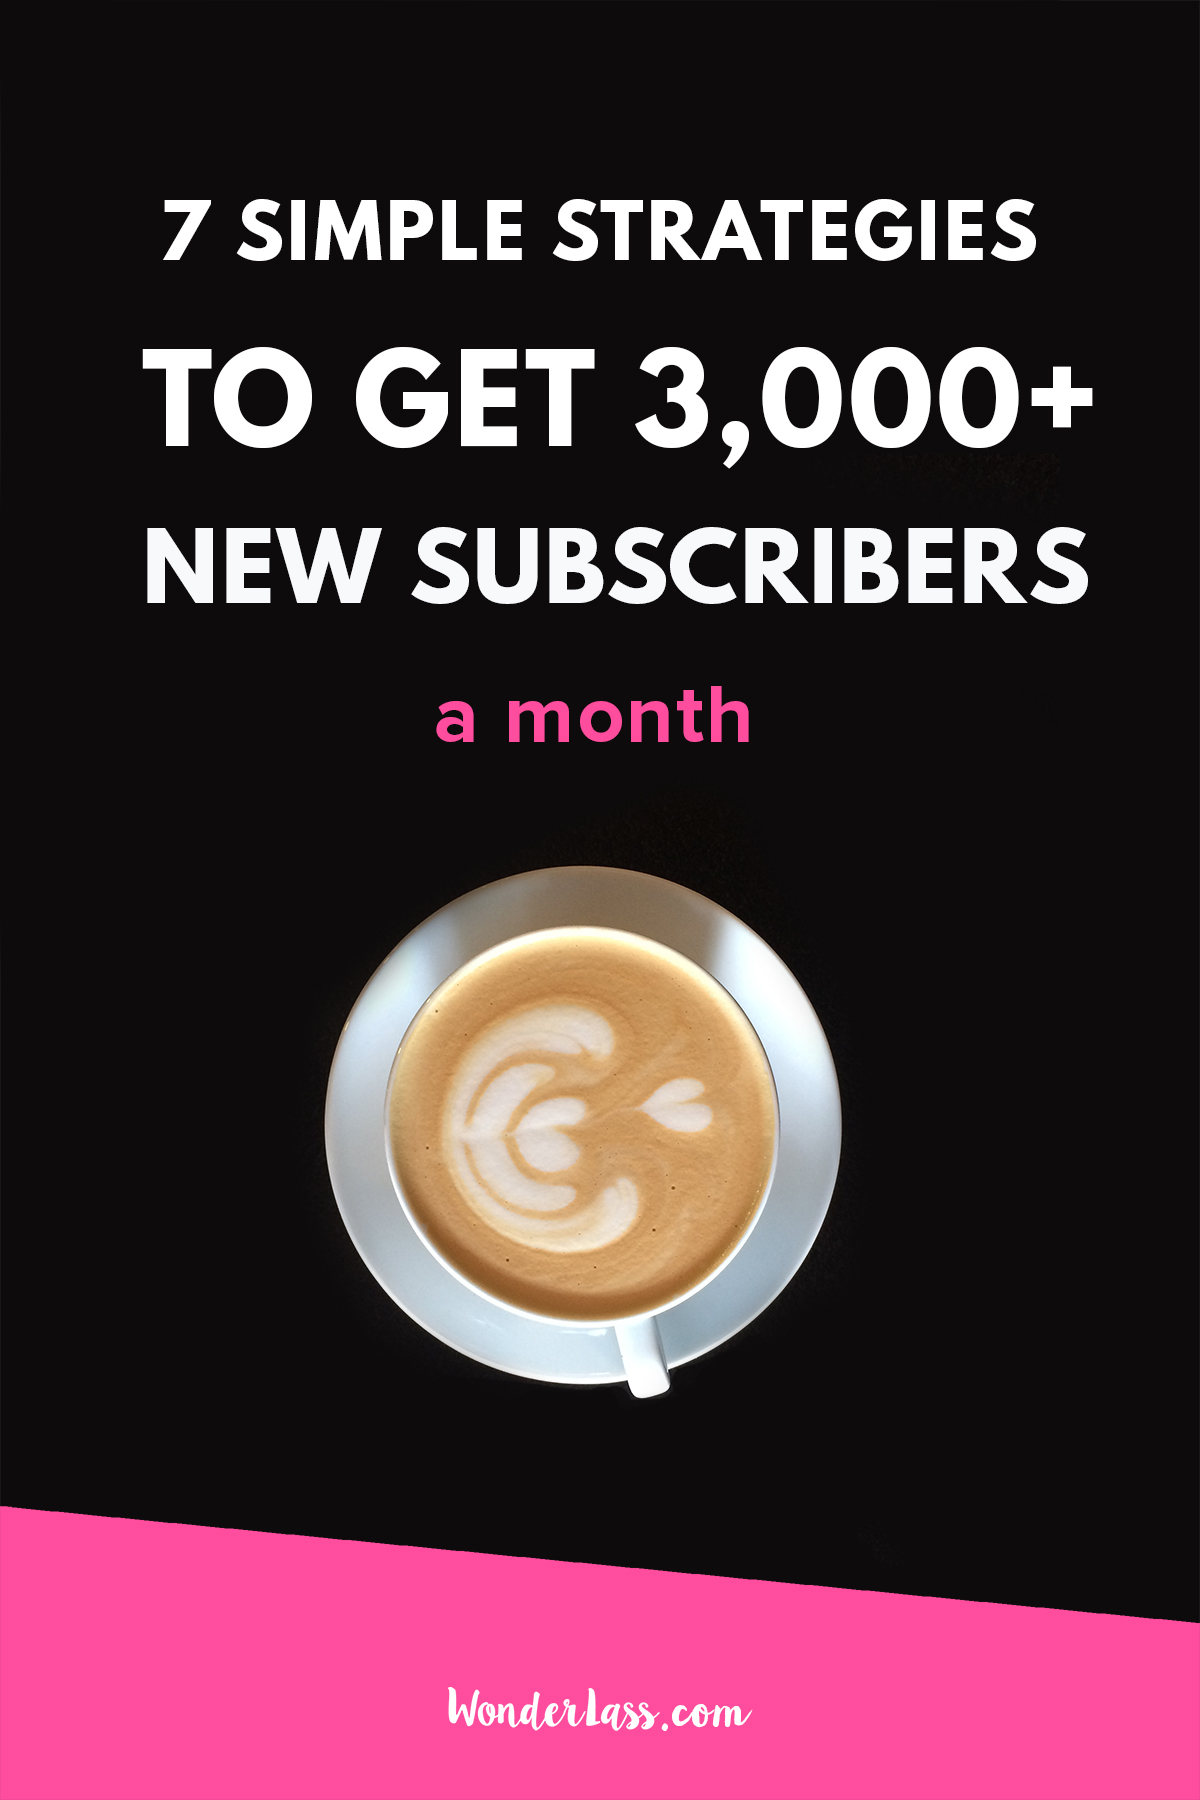 7 Simple Strategies to get 3,000+ Subscribers a Month #businesstips #onlinemarketing #emaillist #passiveincome #contentmarketing